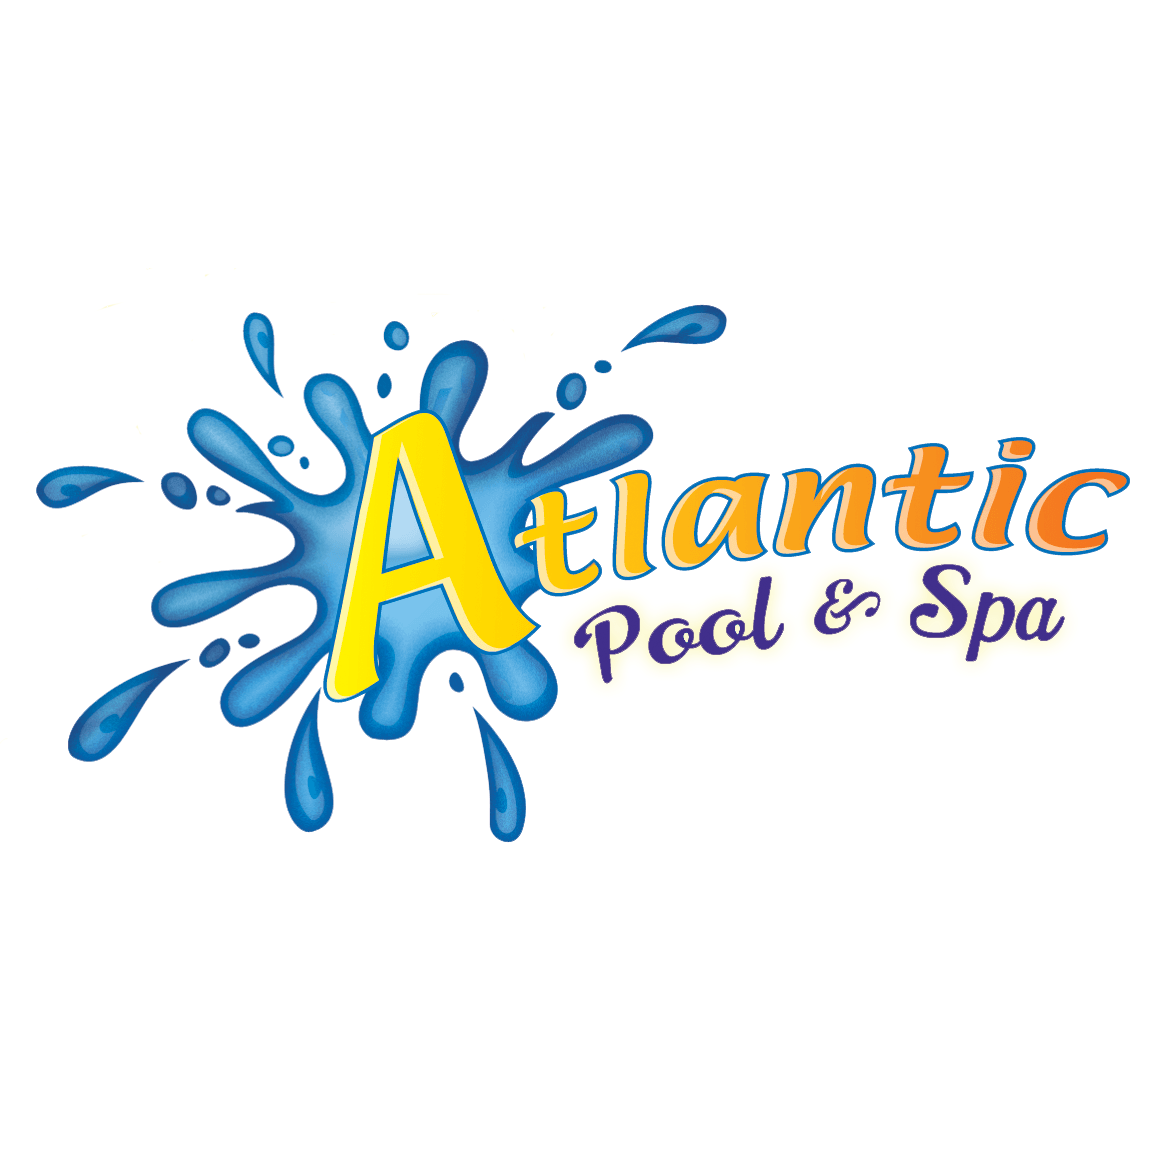 Swimming Pool Contractor in NJ Lake Hopatcong 07849 Atlantic Pool and Spa 770 Route 15  (973)601-3320